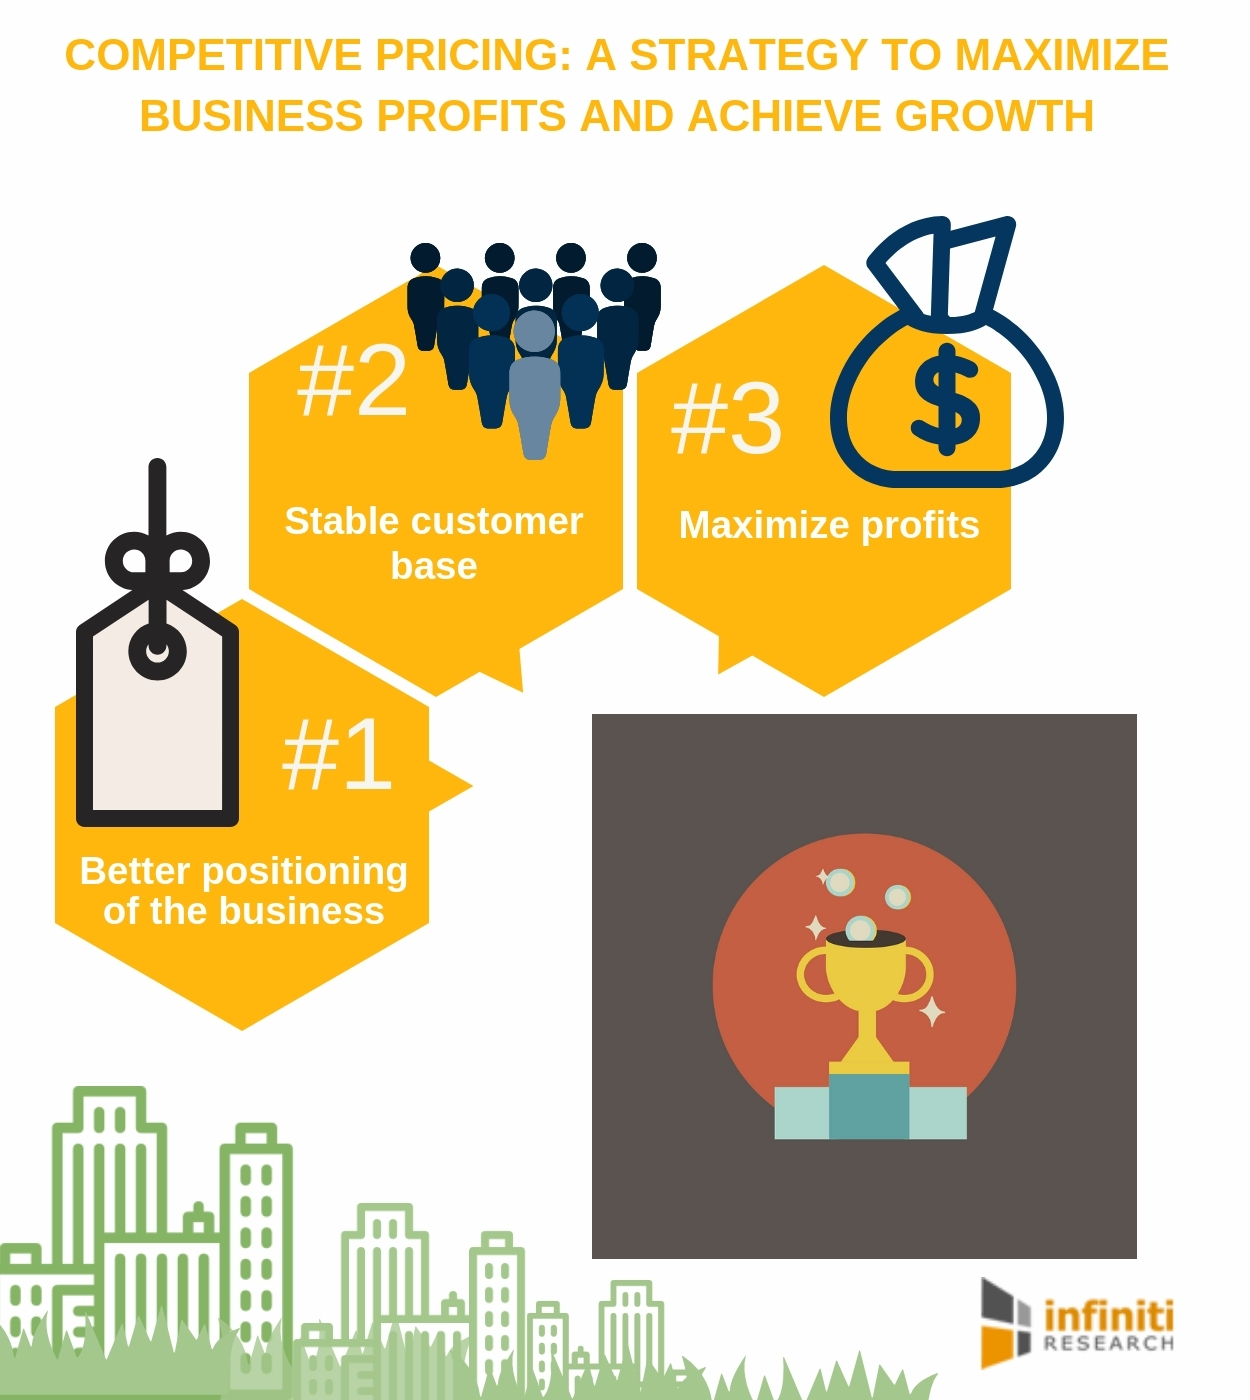 Pricing Policy: Infiniti Research Reveals The Advantages Of Competitive